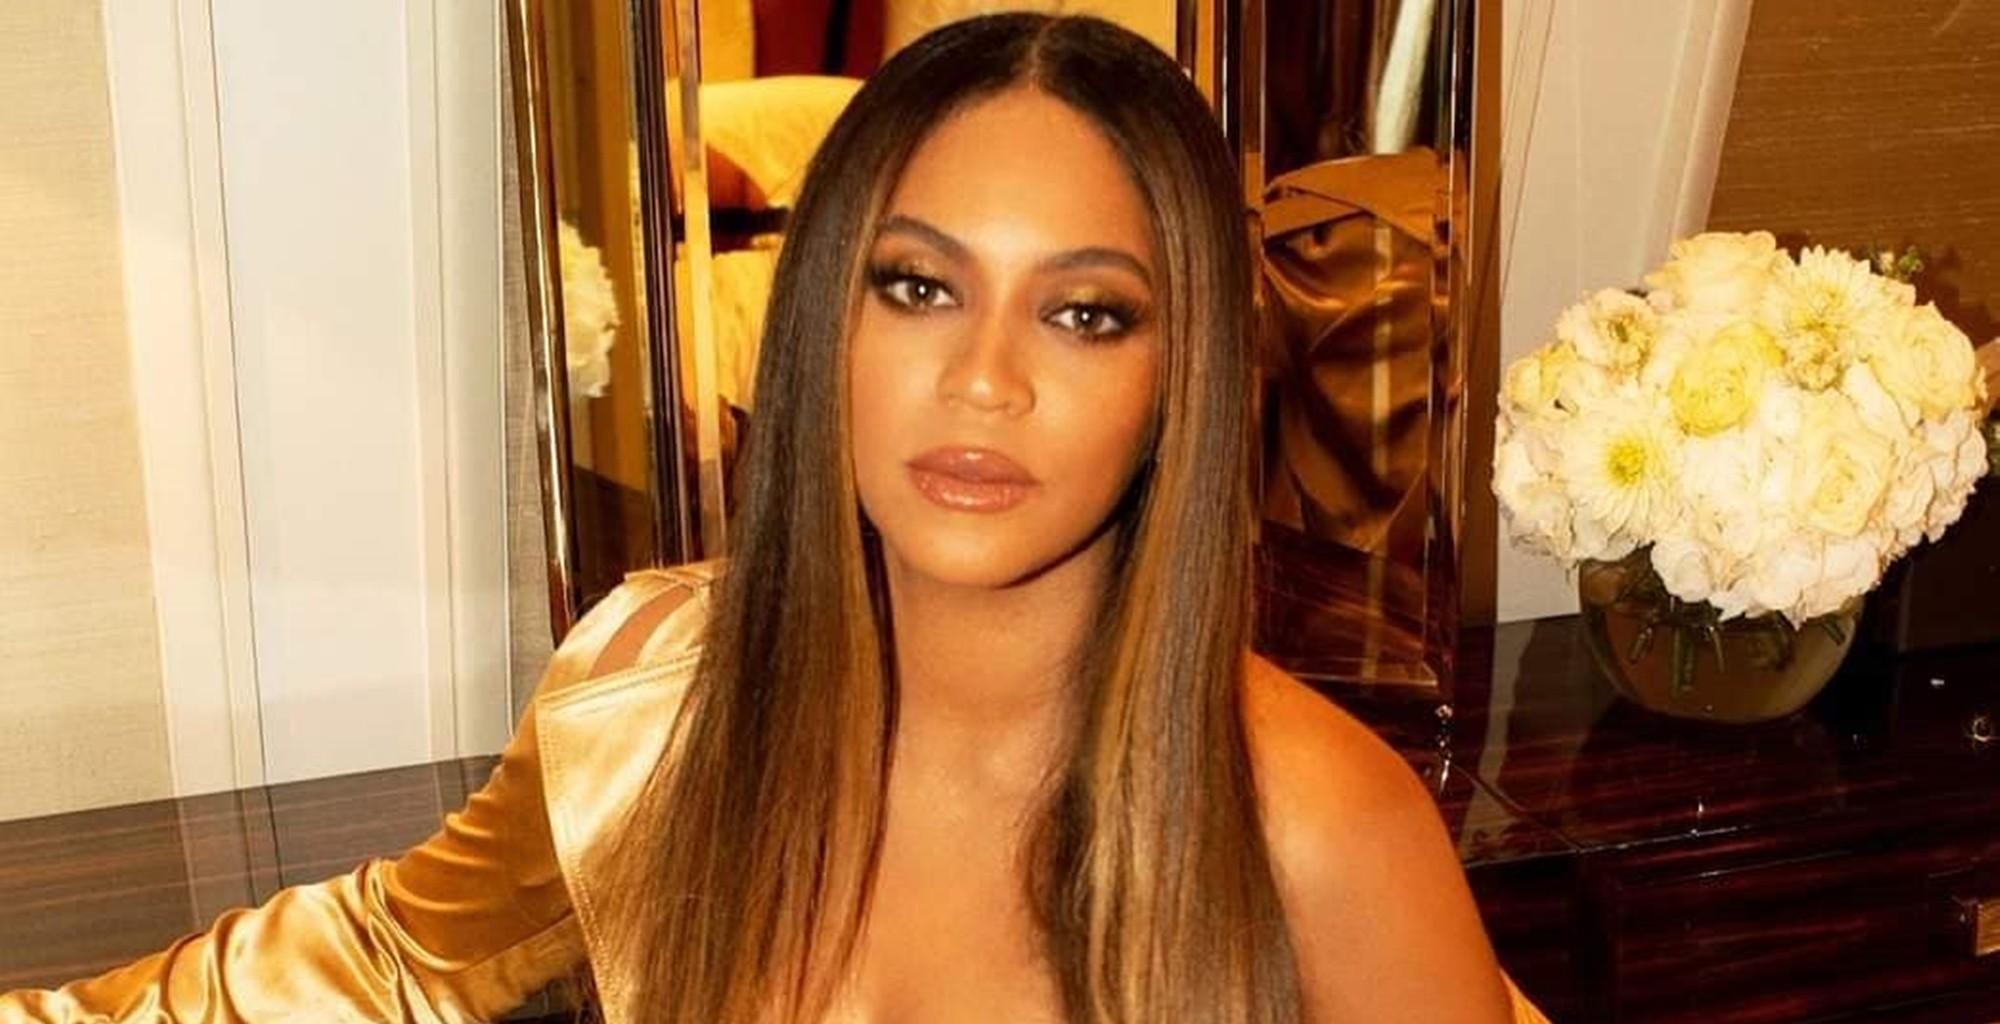 Jay-Z Surprises Beyonce With Birthday Cake And Serenades Her In Videos As New Pregnancy Rumors Surface